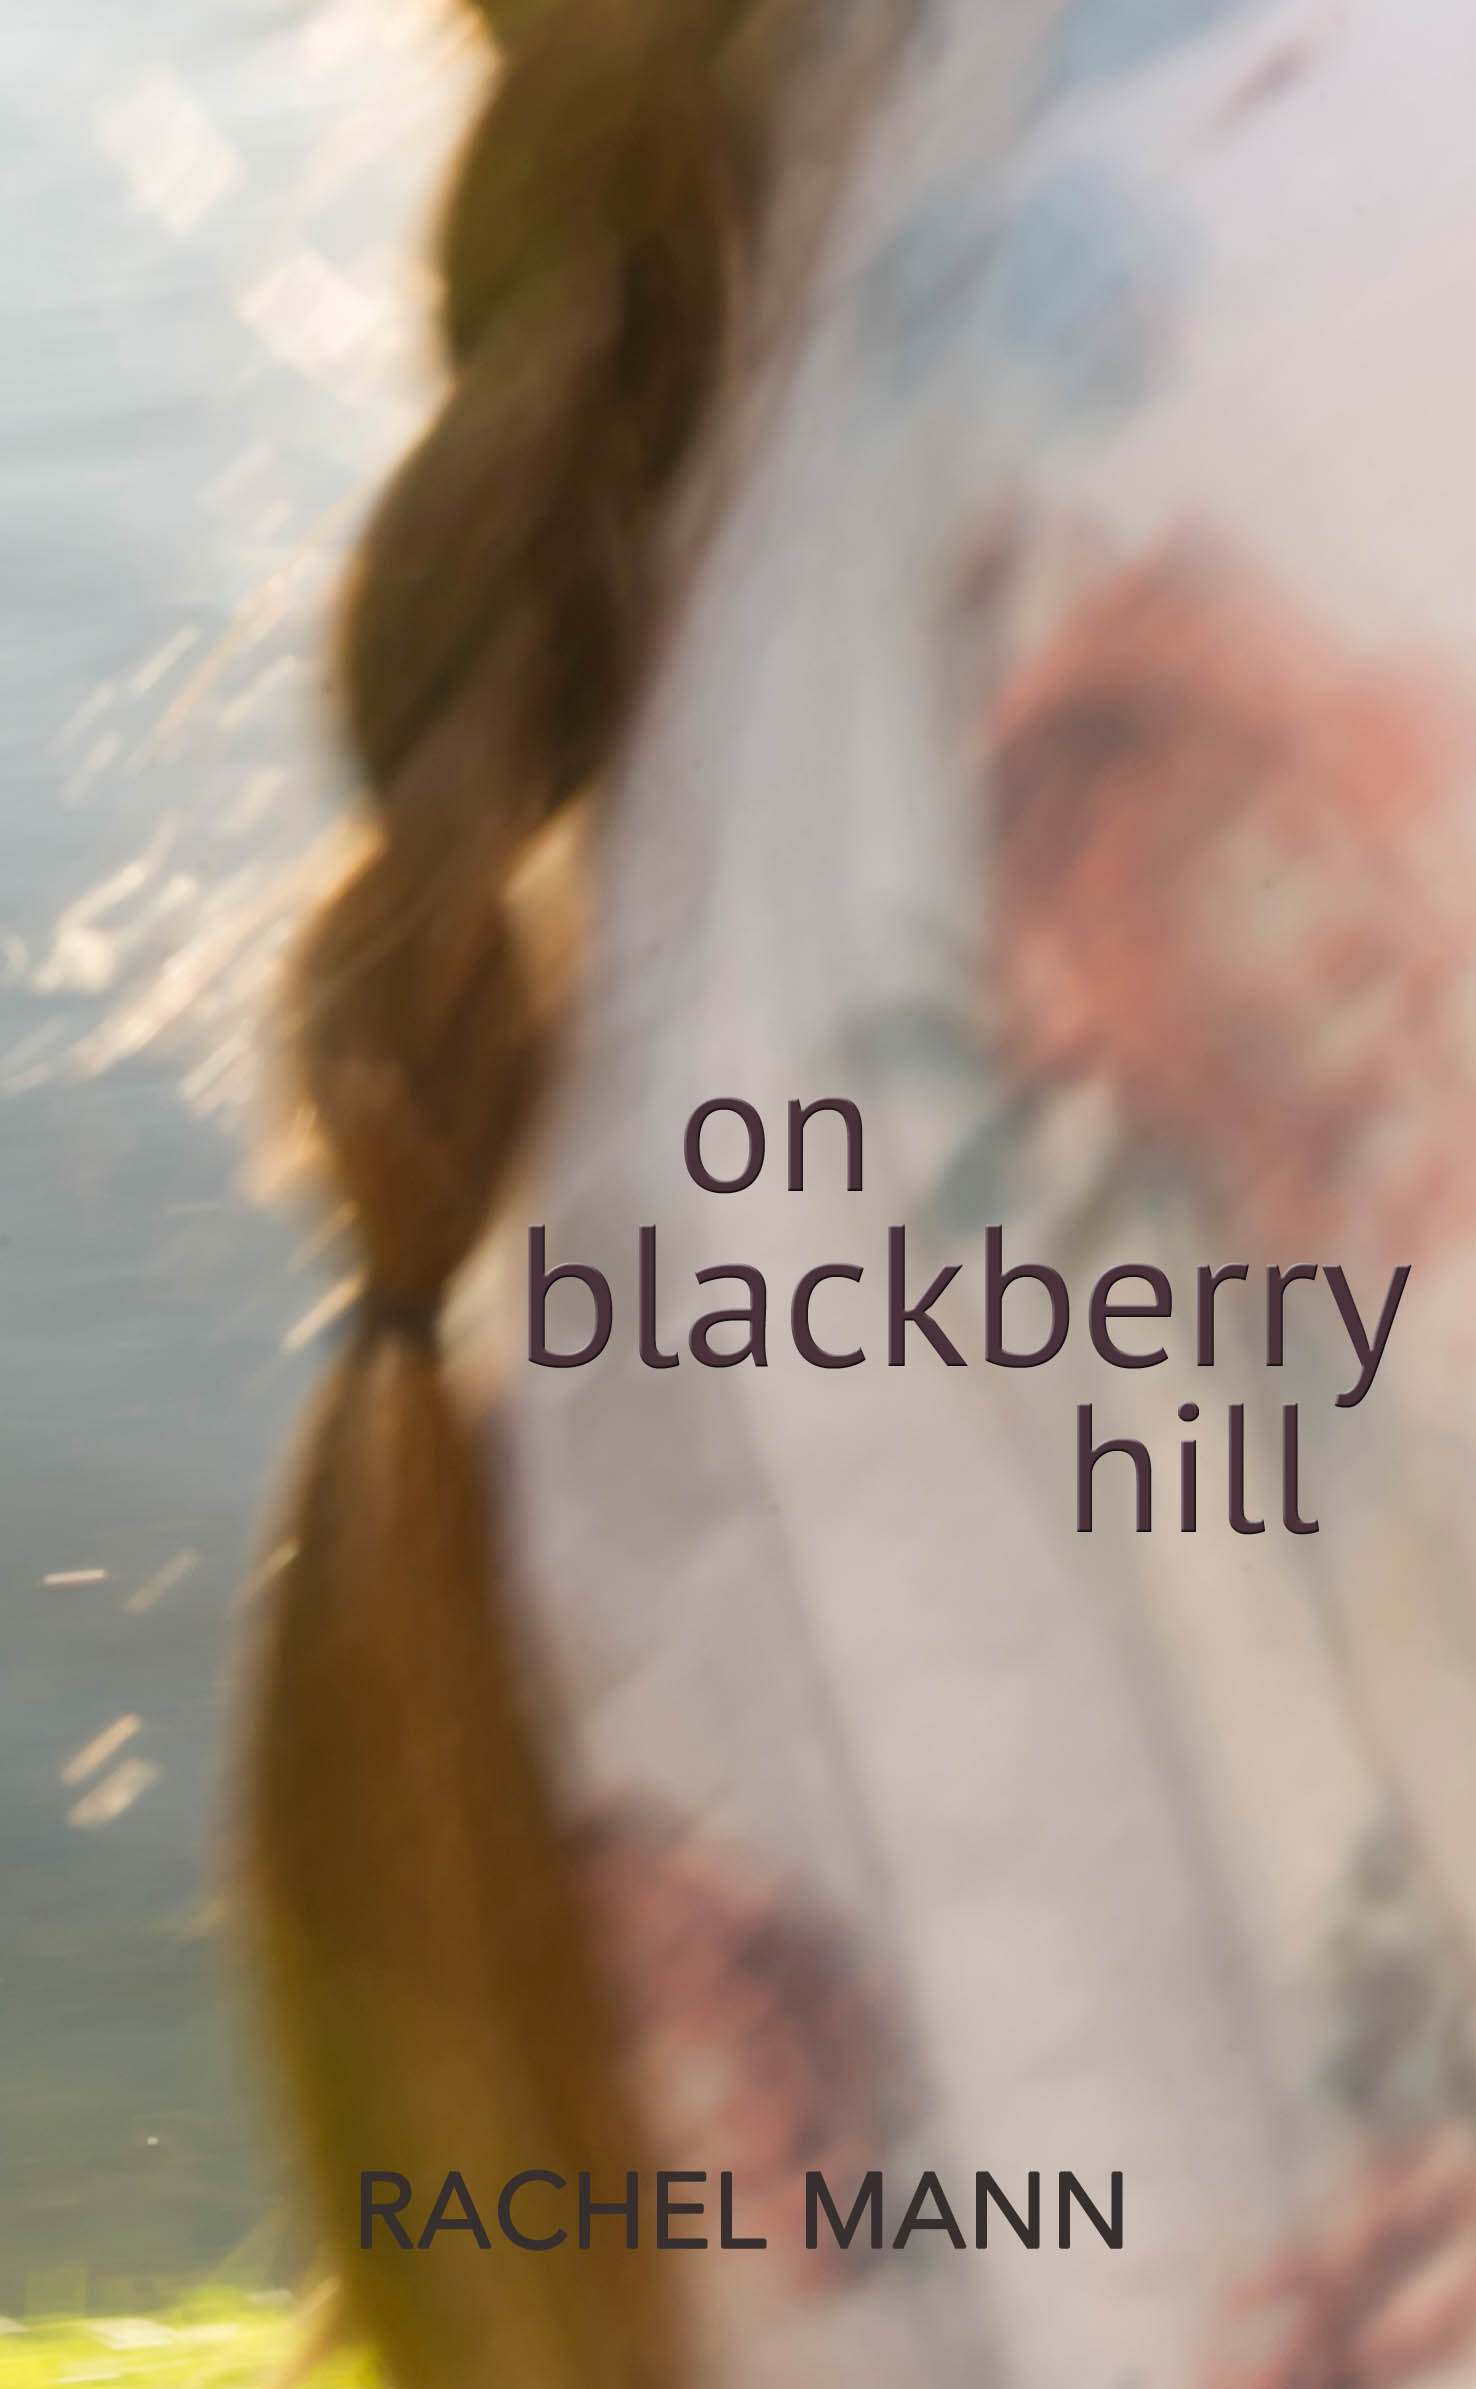 On-Blackberry-Hill-rachel-mann.jpeg